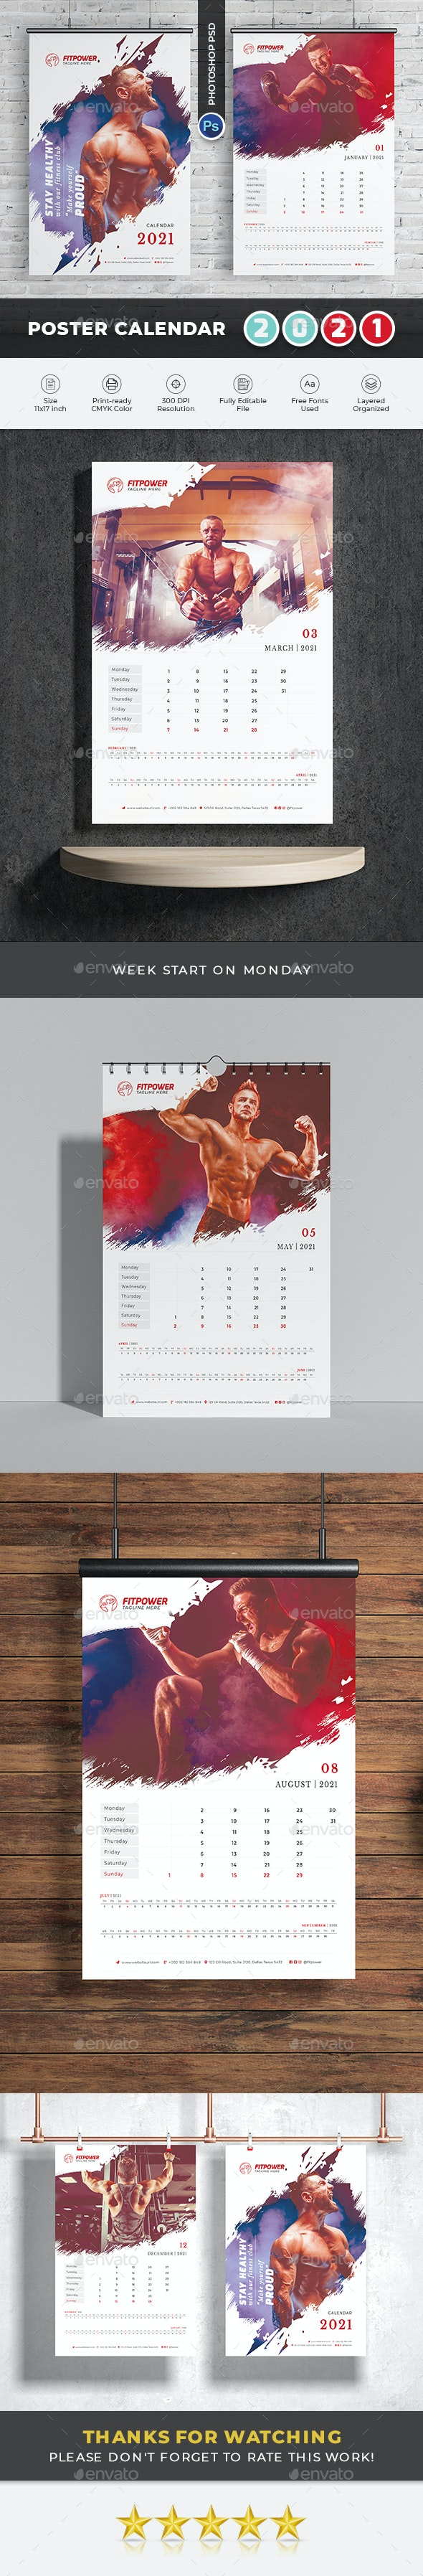 2021 Poster-Calendar Template by didargds   GraphicRiver